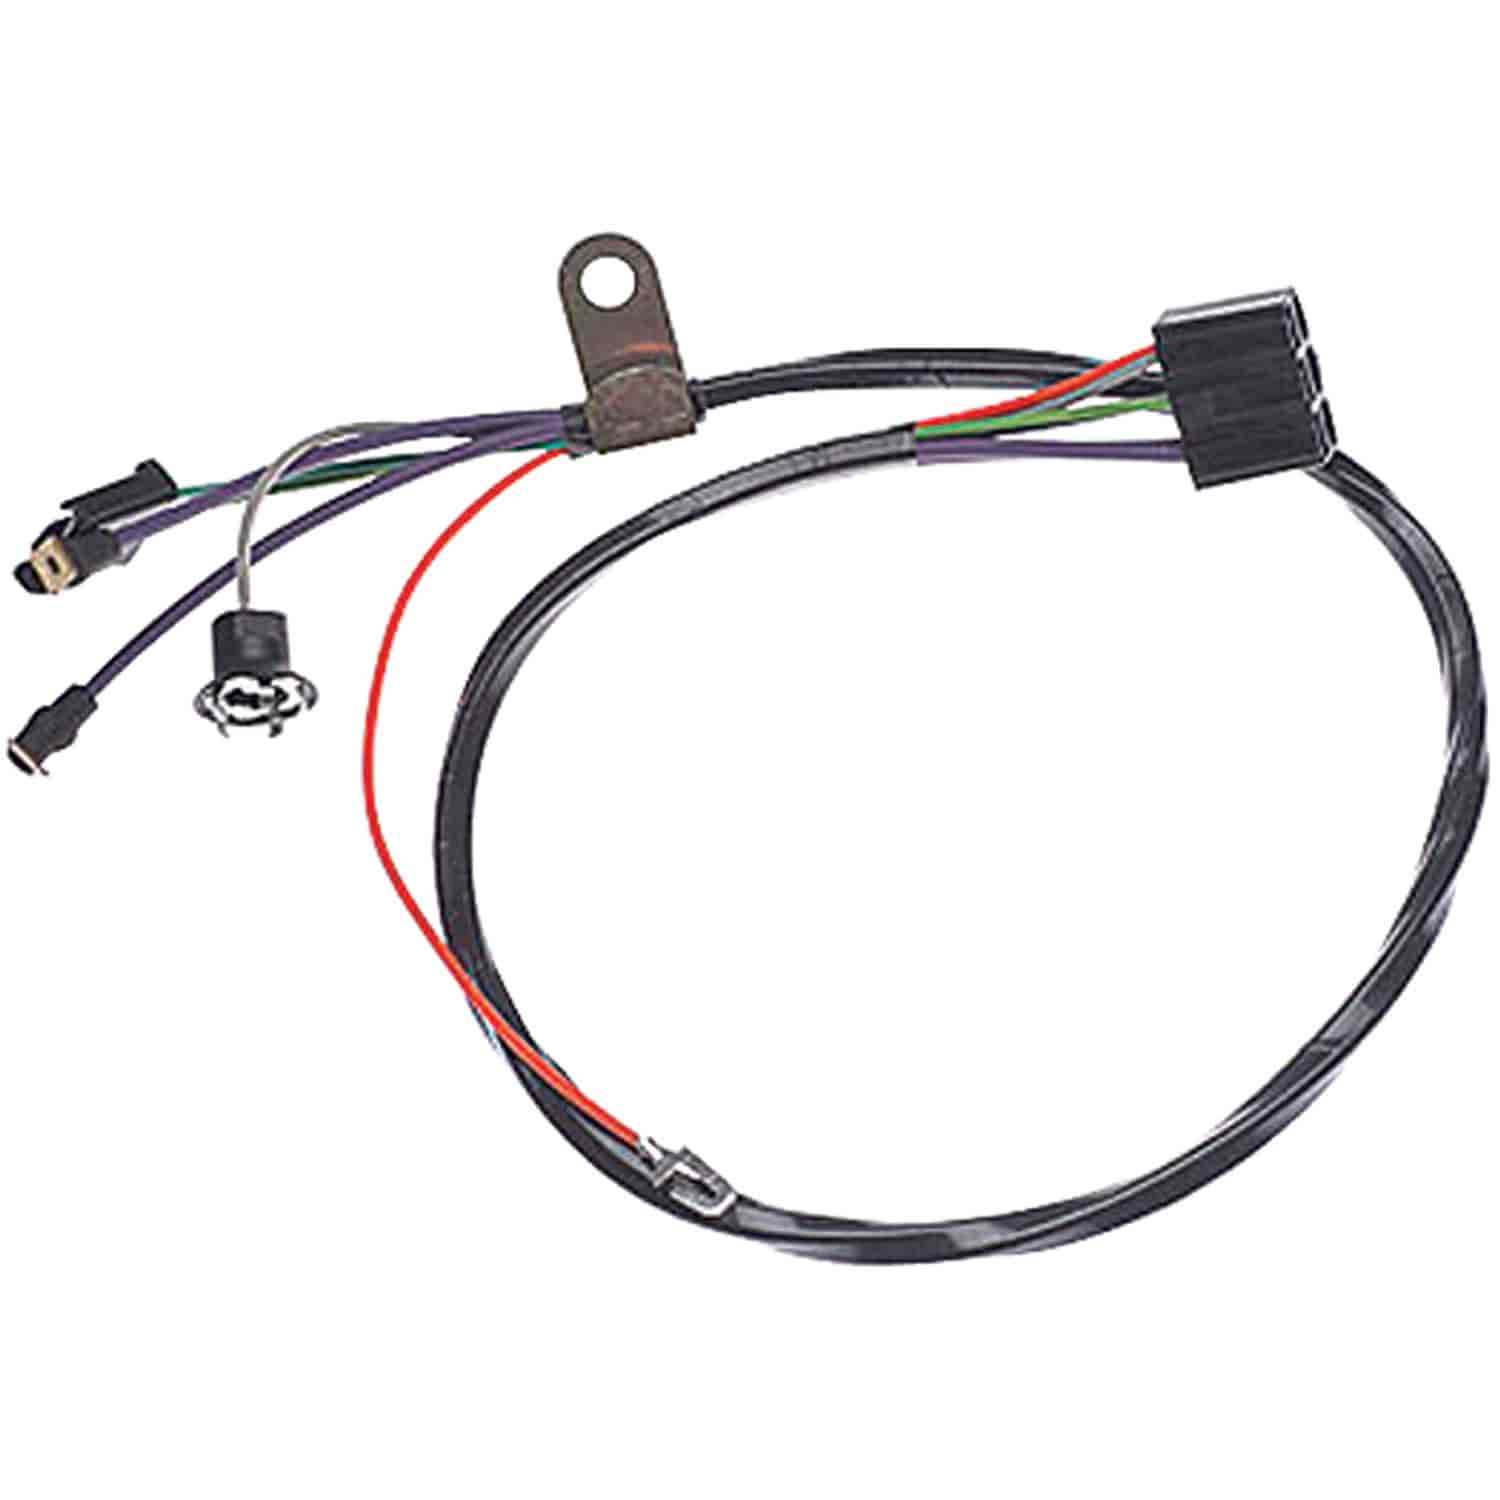 Restoparts Wiring Harness Console 68 Bonn Cat